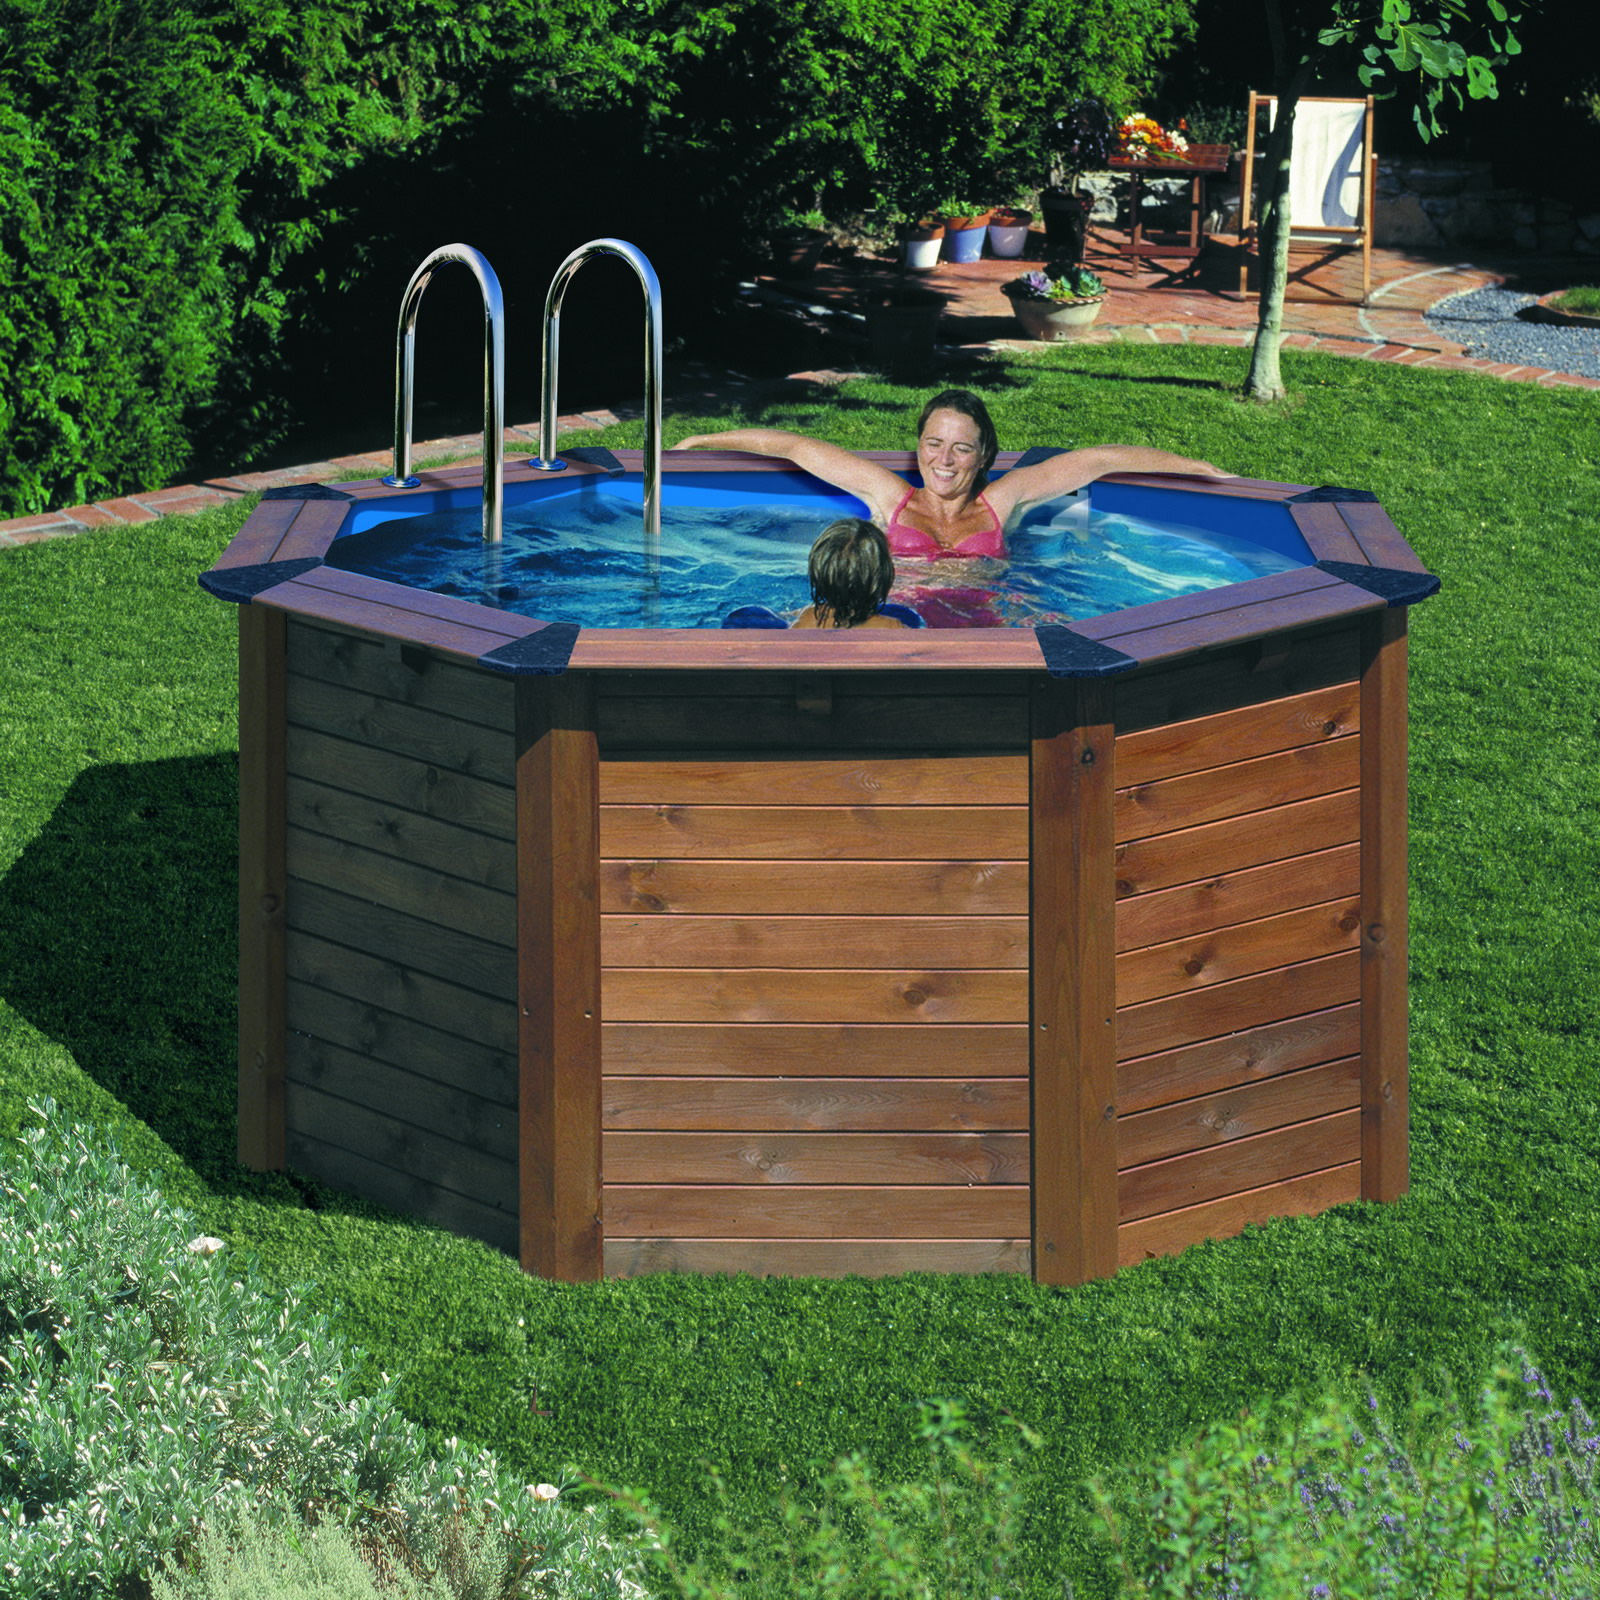 Piscine autoportante for Piscine hors sol hauteur 1m60